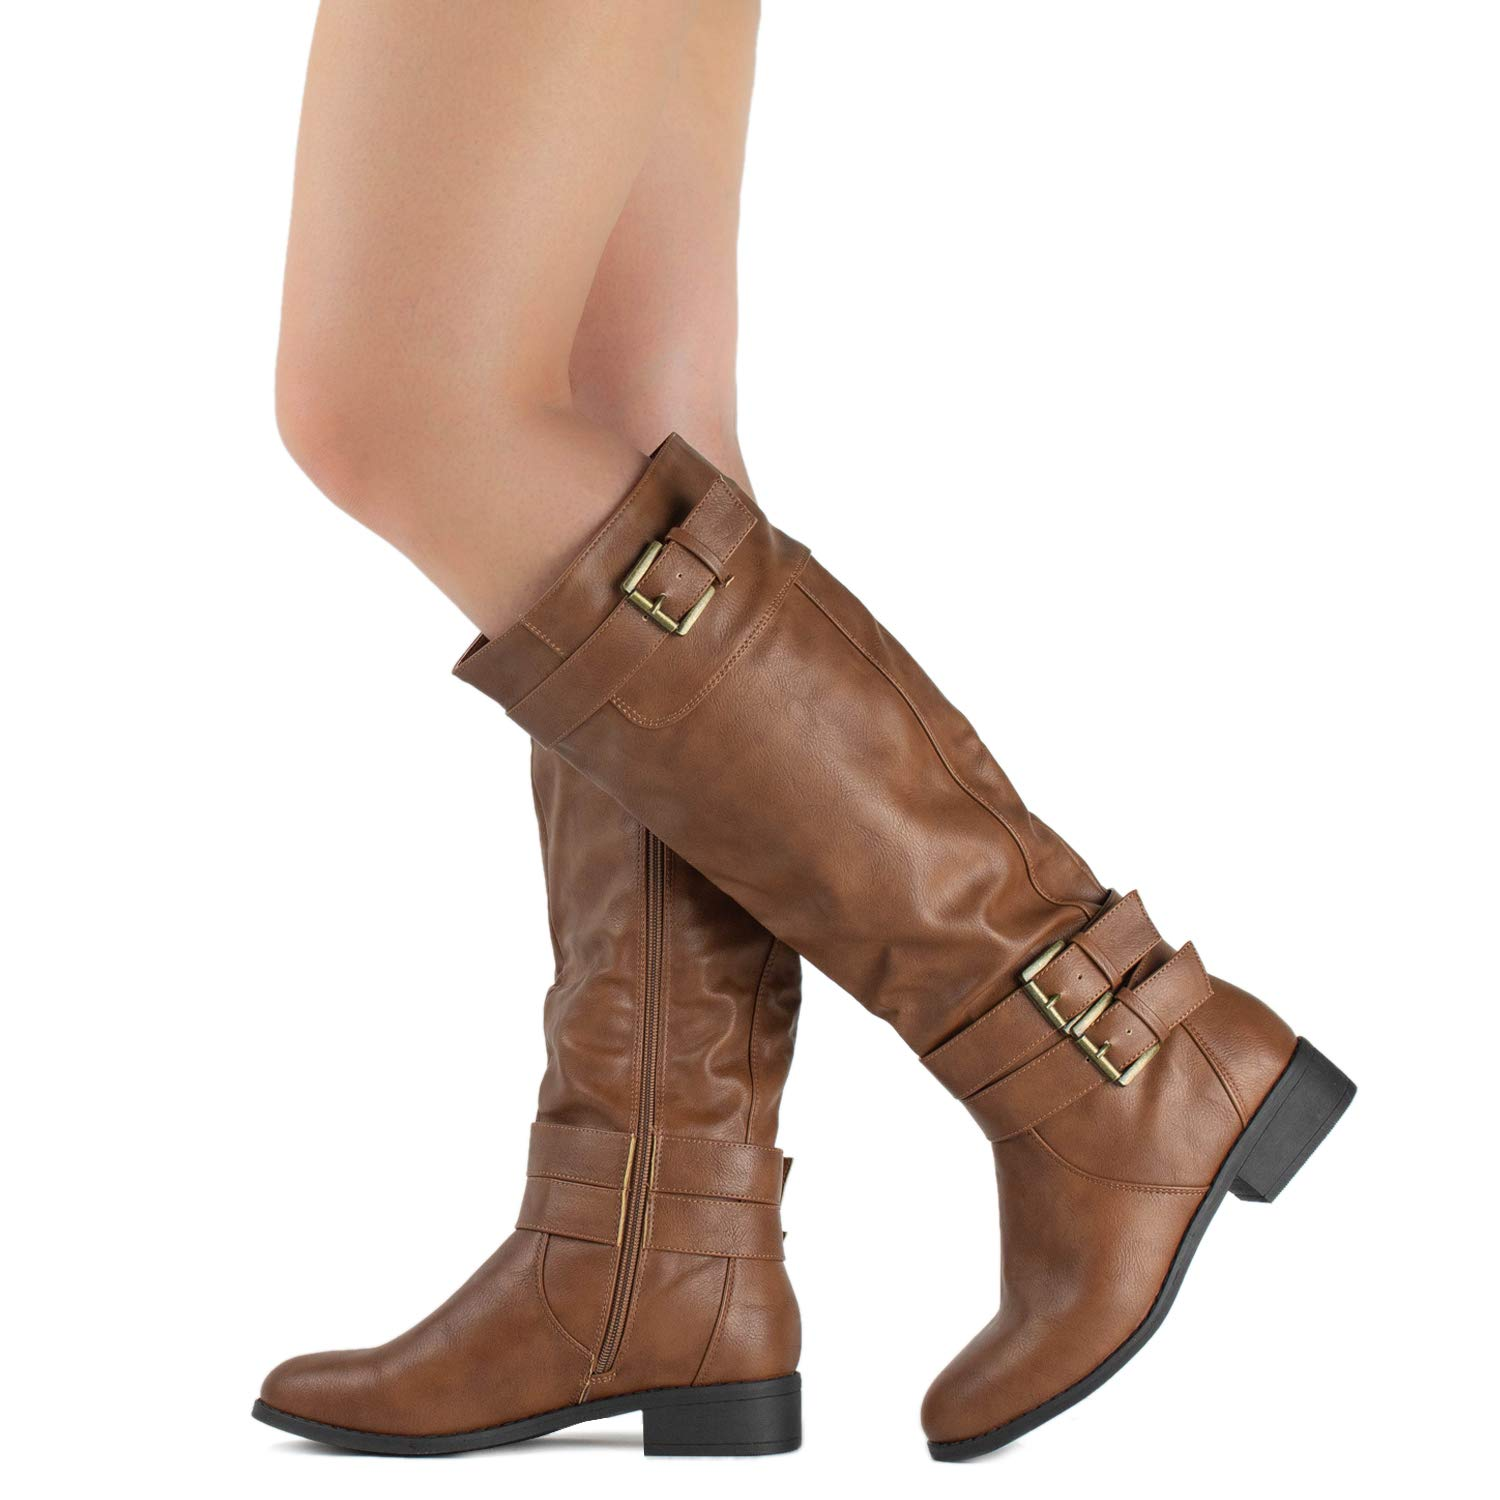 RF ROOM OF FASHION Lady's Buckle Knee High Riding Boots Hidden Pocket (Available in Medium Wide Calf)